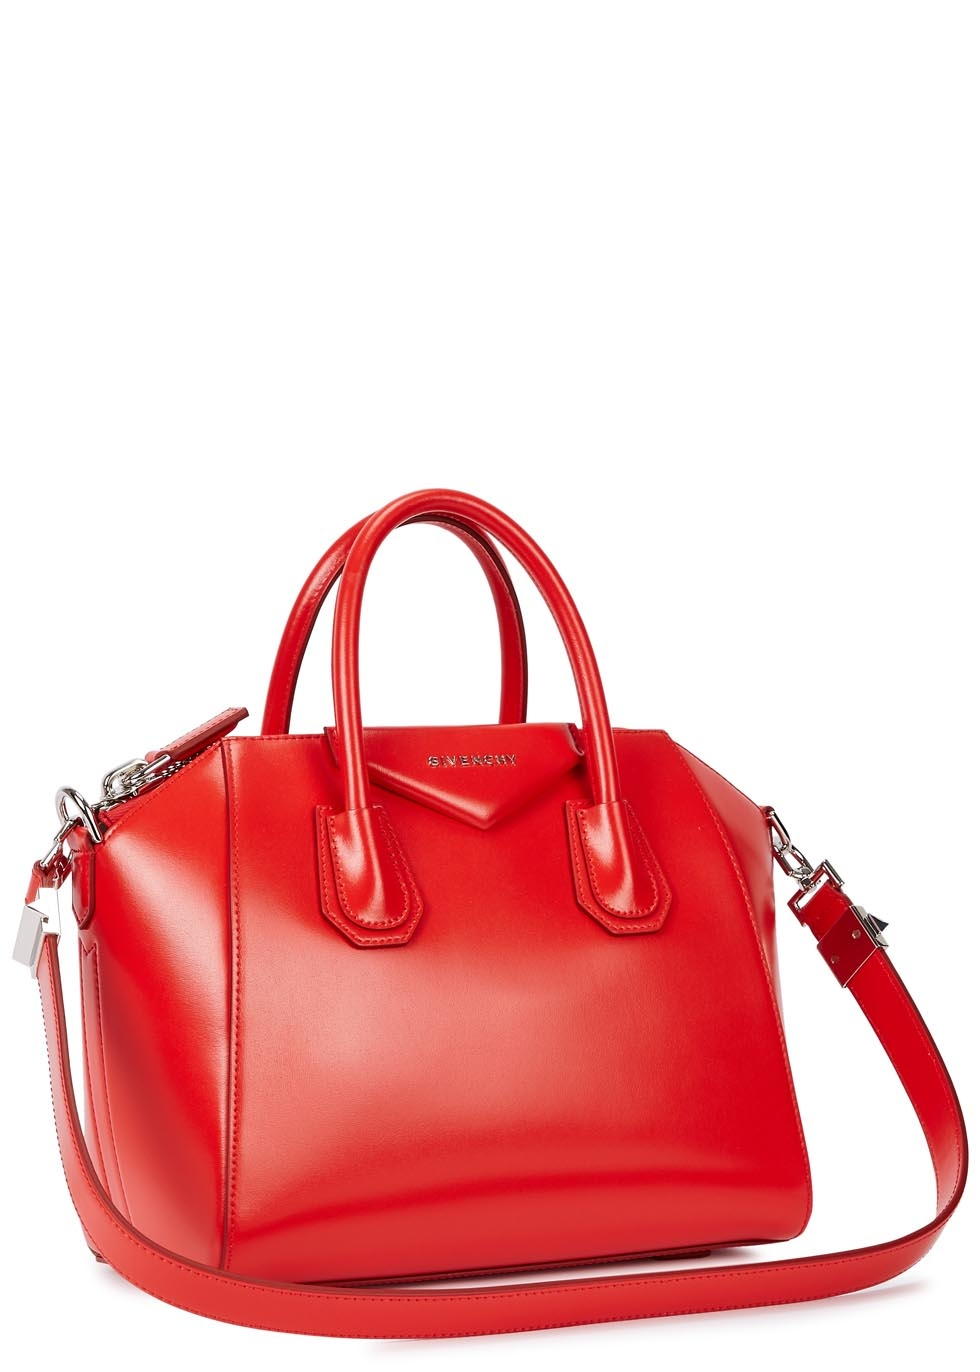 Givenchy Antigona Small Bright Red Leather Tote in Red - Lyst 6ea18c9e16315